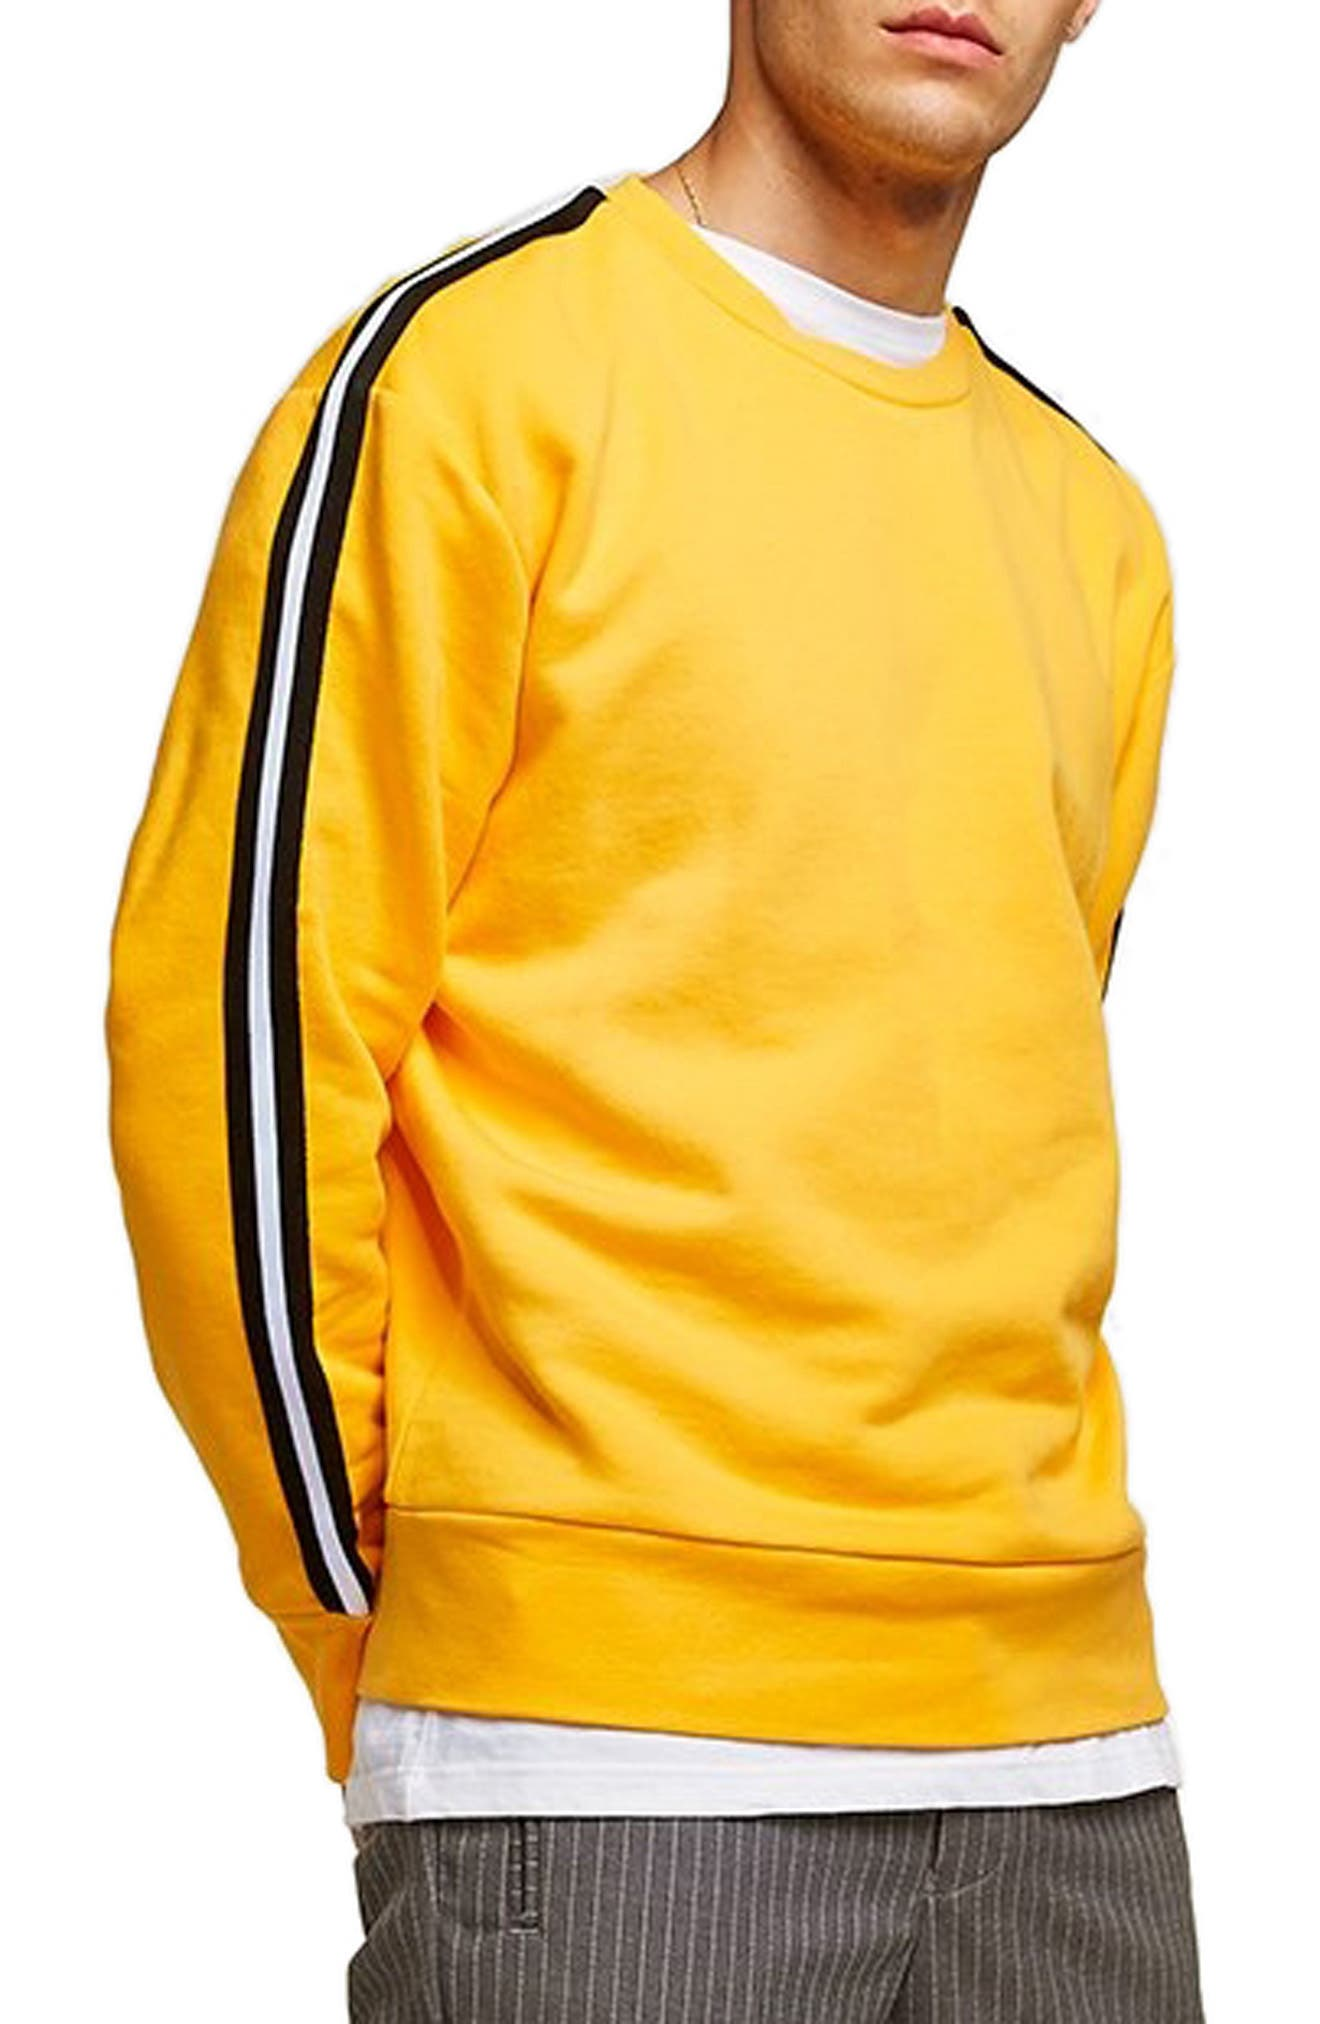 Taped Classic Fit Sweatshirt,                             Main thumbnail 1, color,                             700